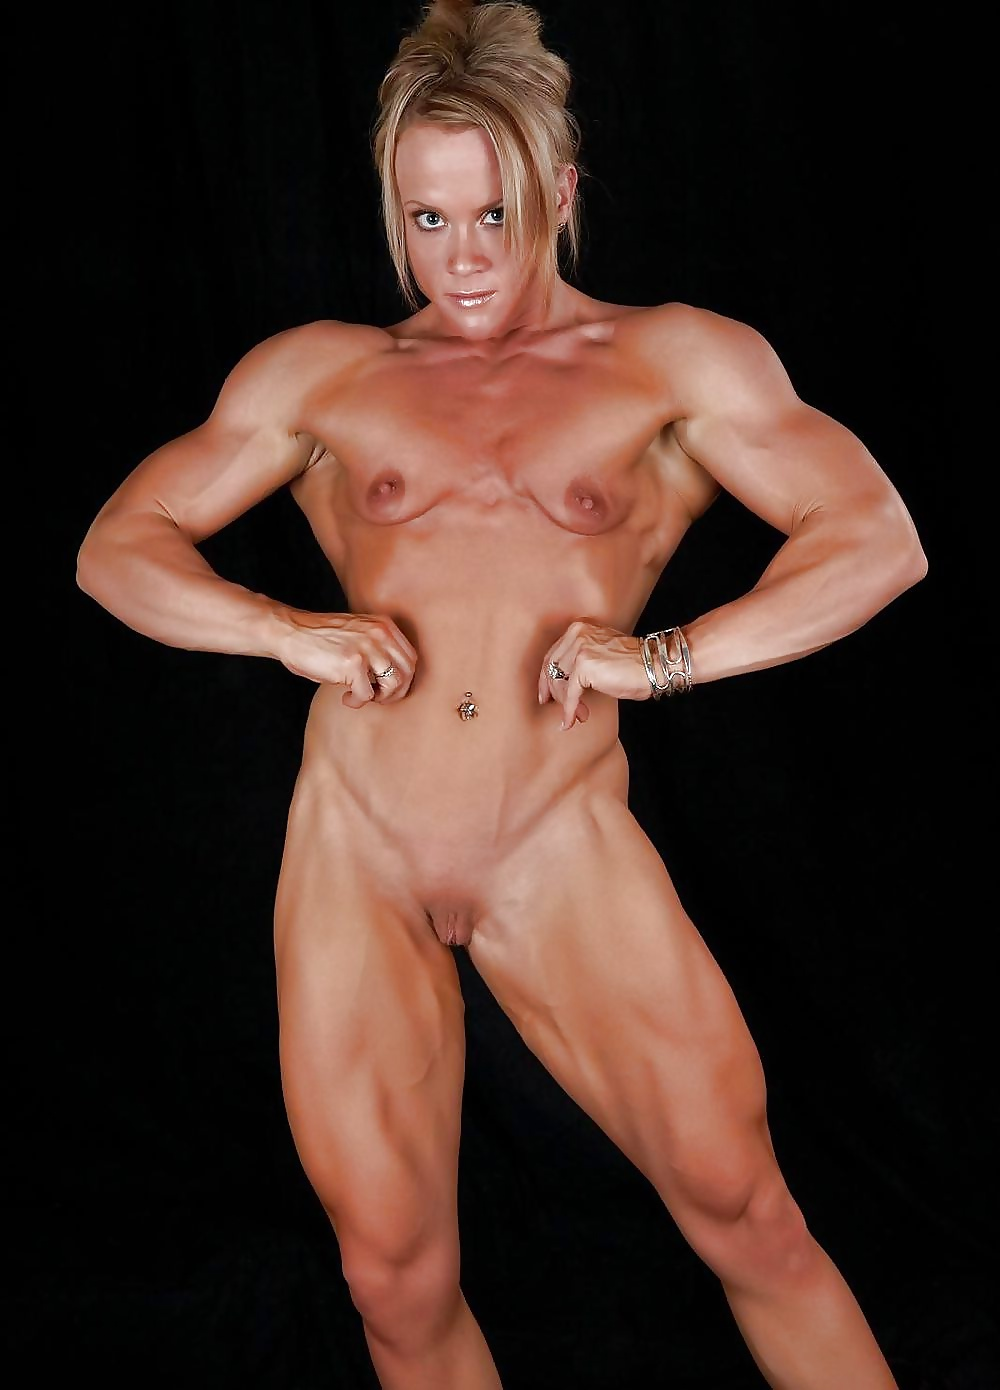 jelly-female-bodybuilding-pictures-nude-pussy-withdrawal-from